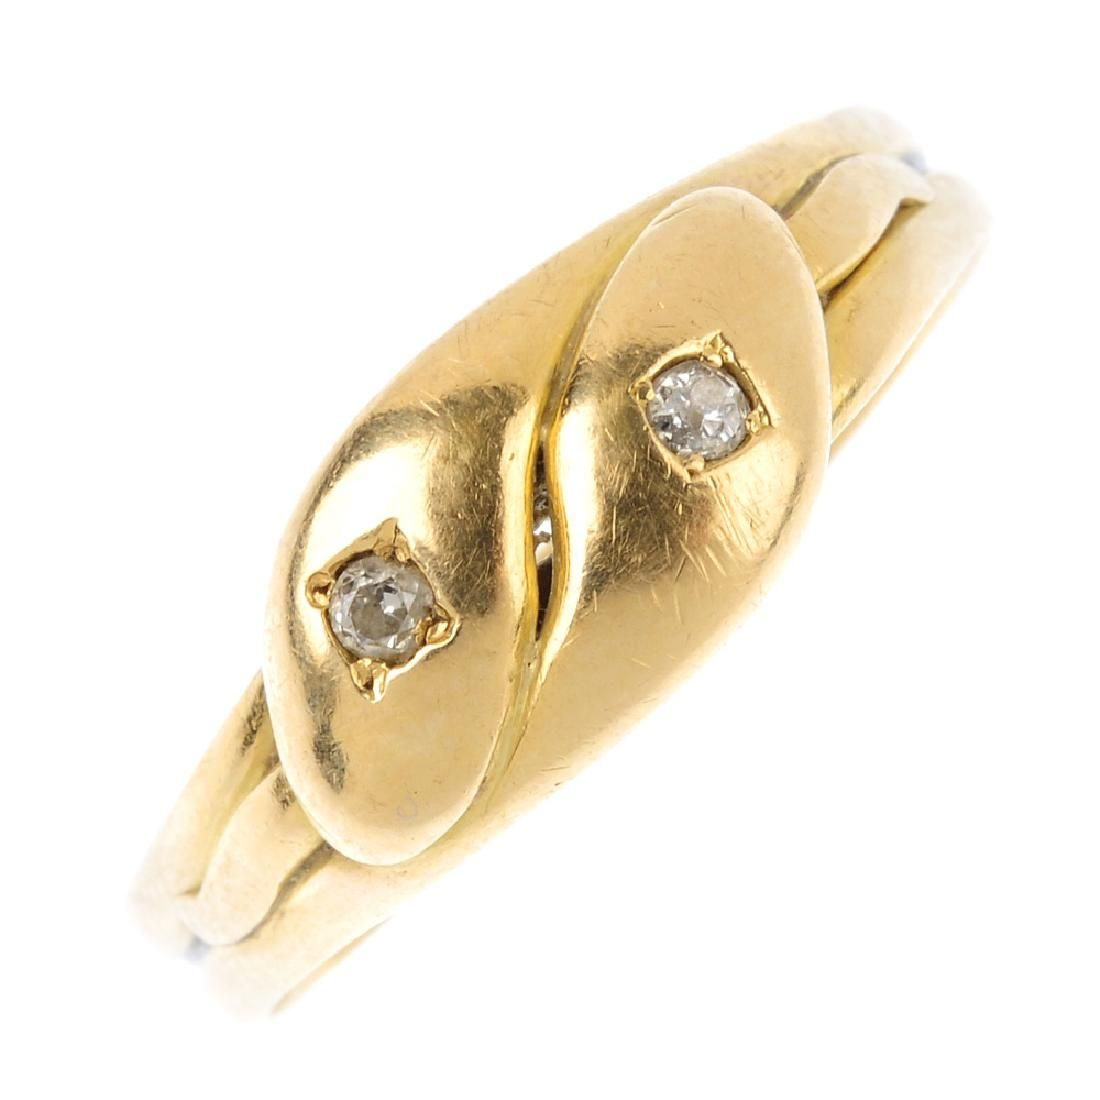 A late Victorian 18ct gold diamond band ring. Designed